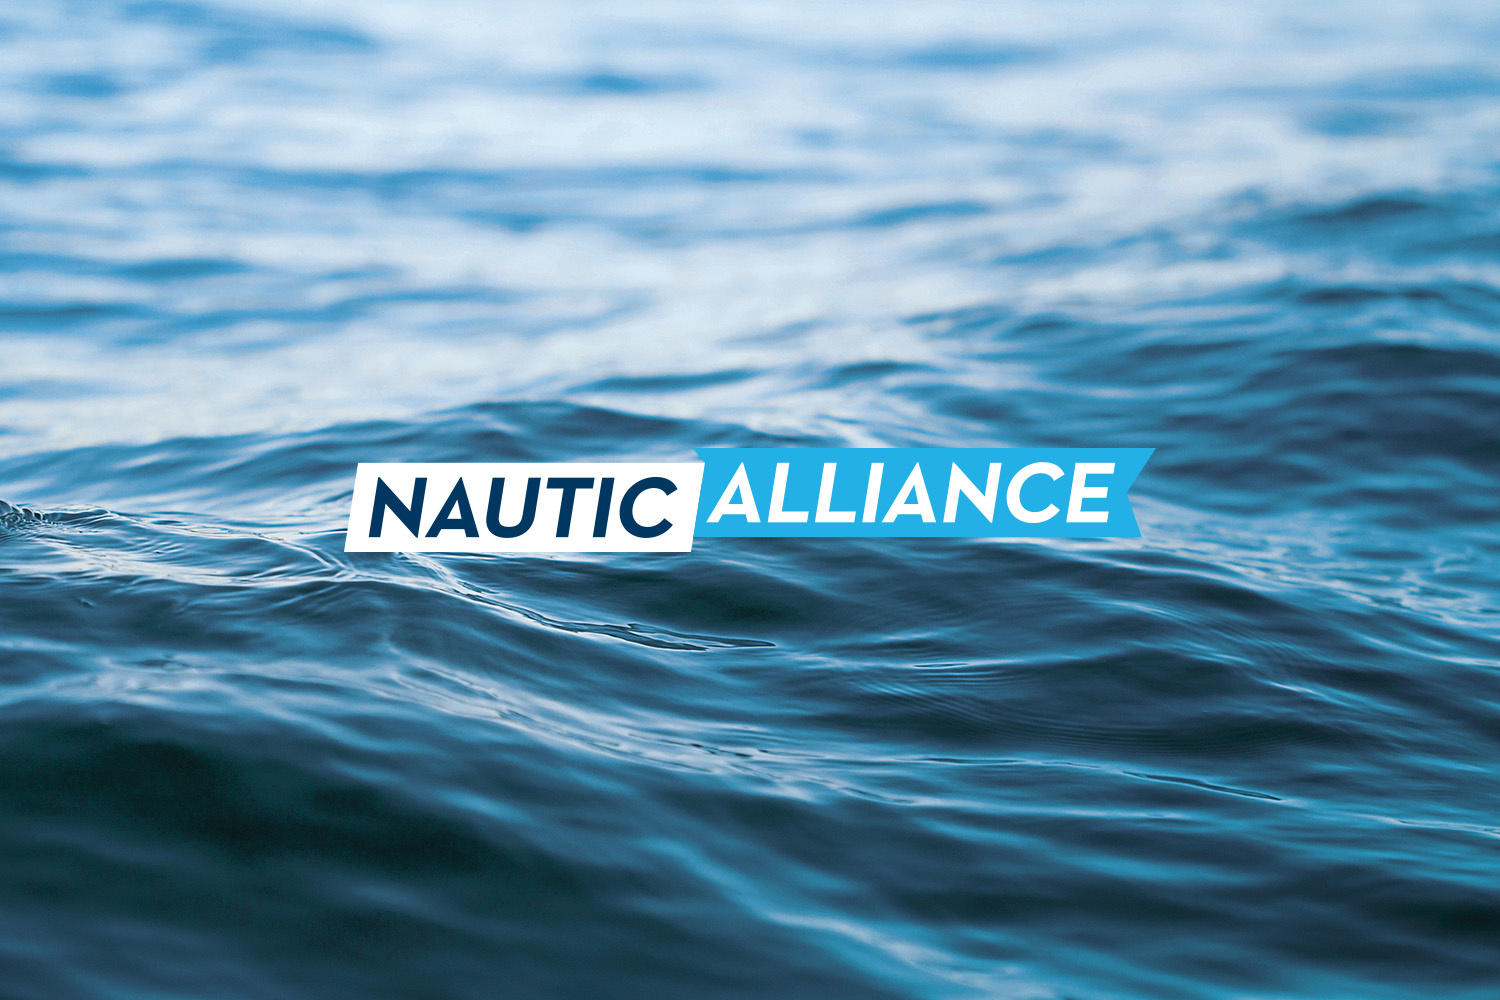 NauticAlliance